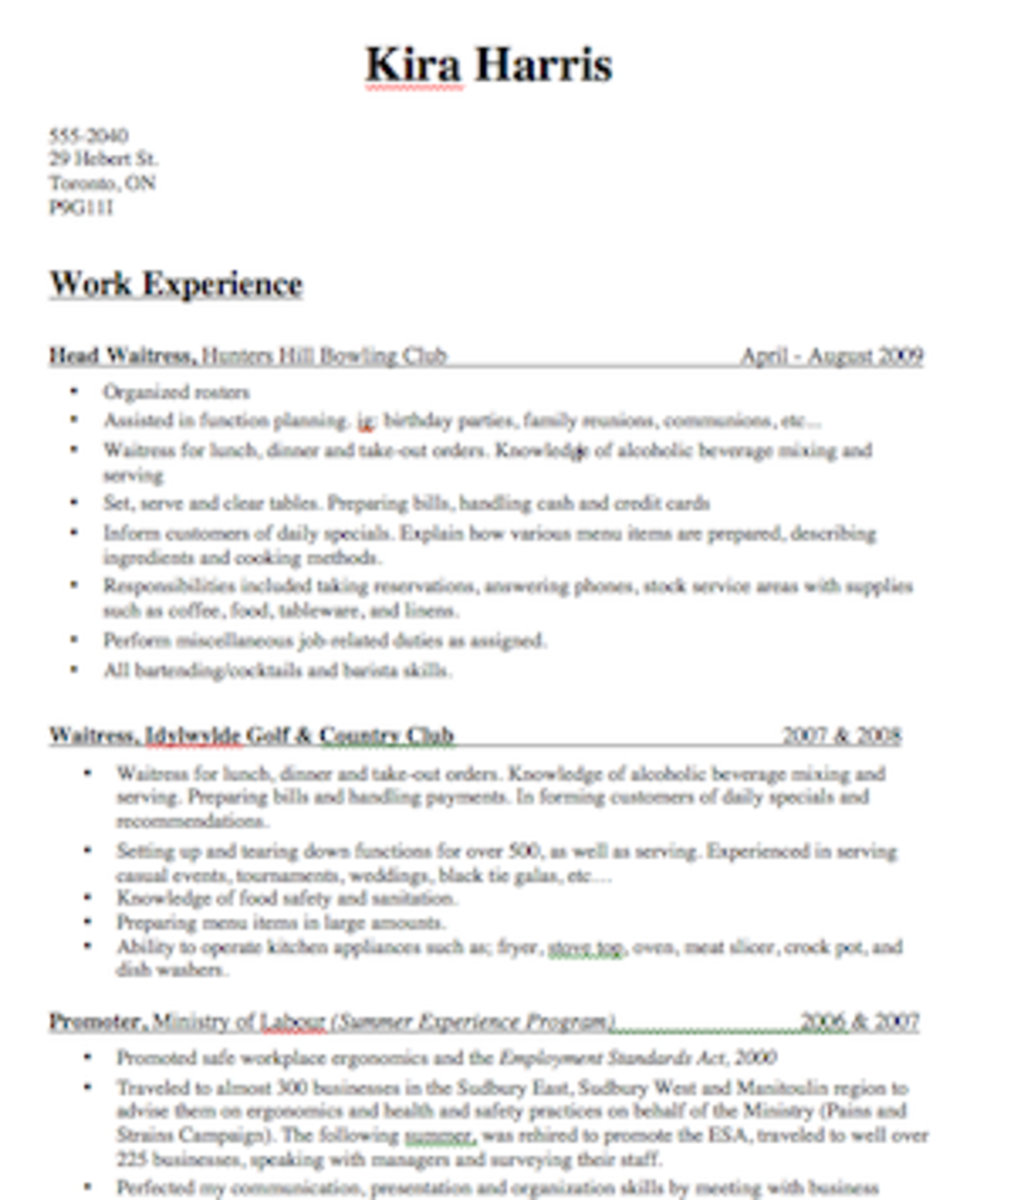 bartender resume tips 26042017 bartender example resume